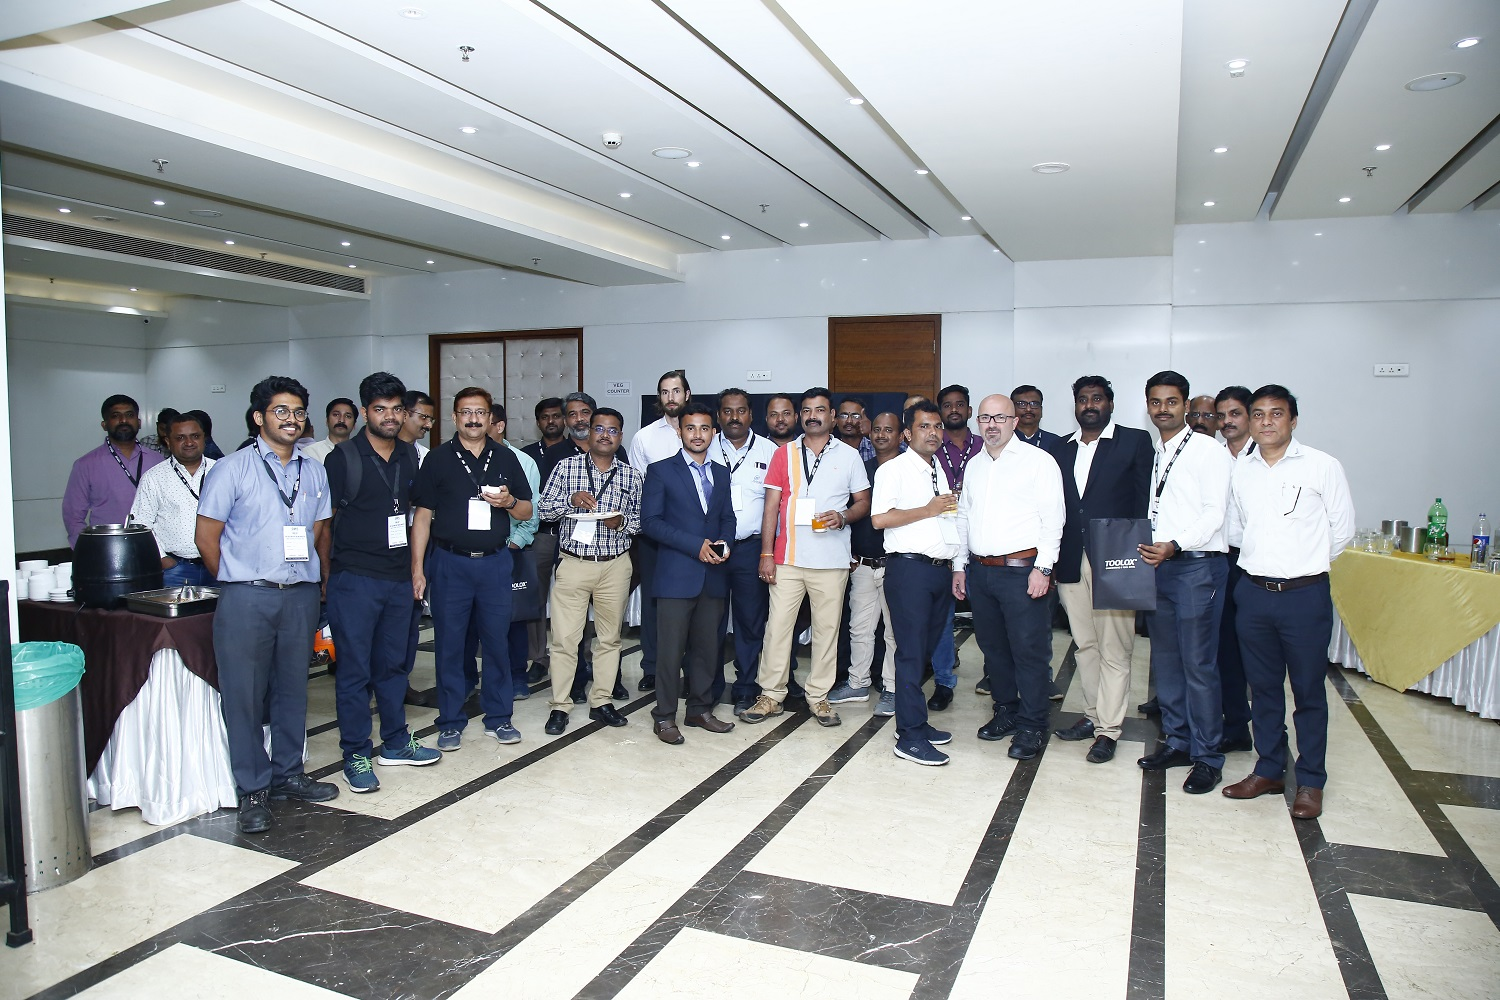 Group photo with Pune Seminar attendees